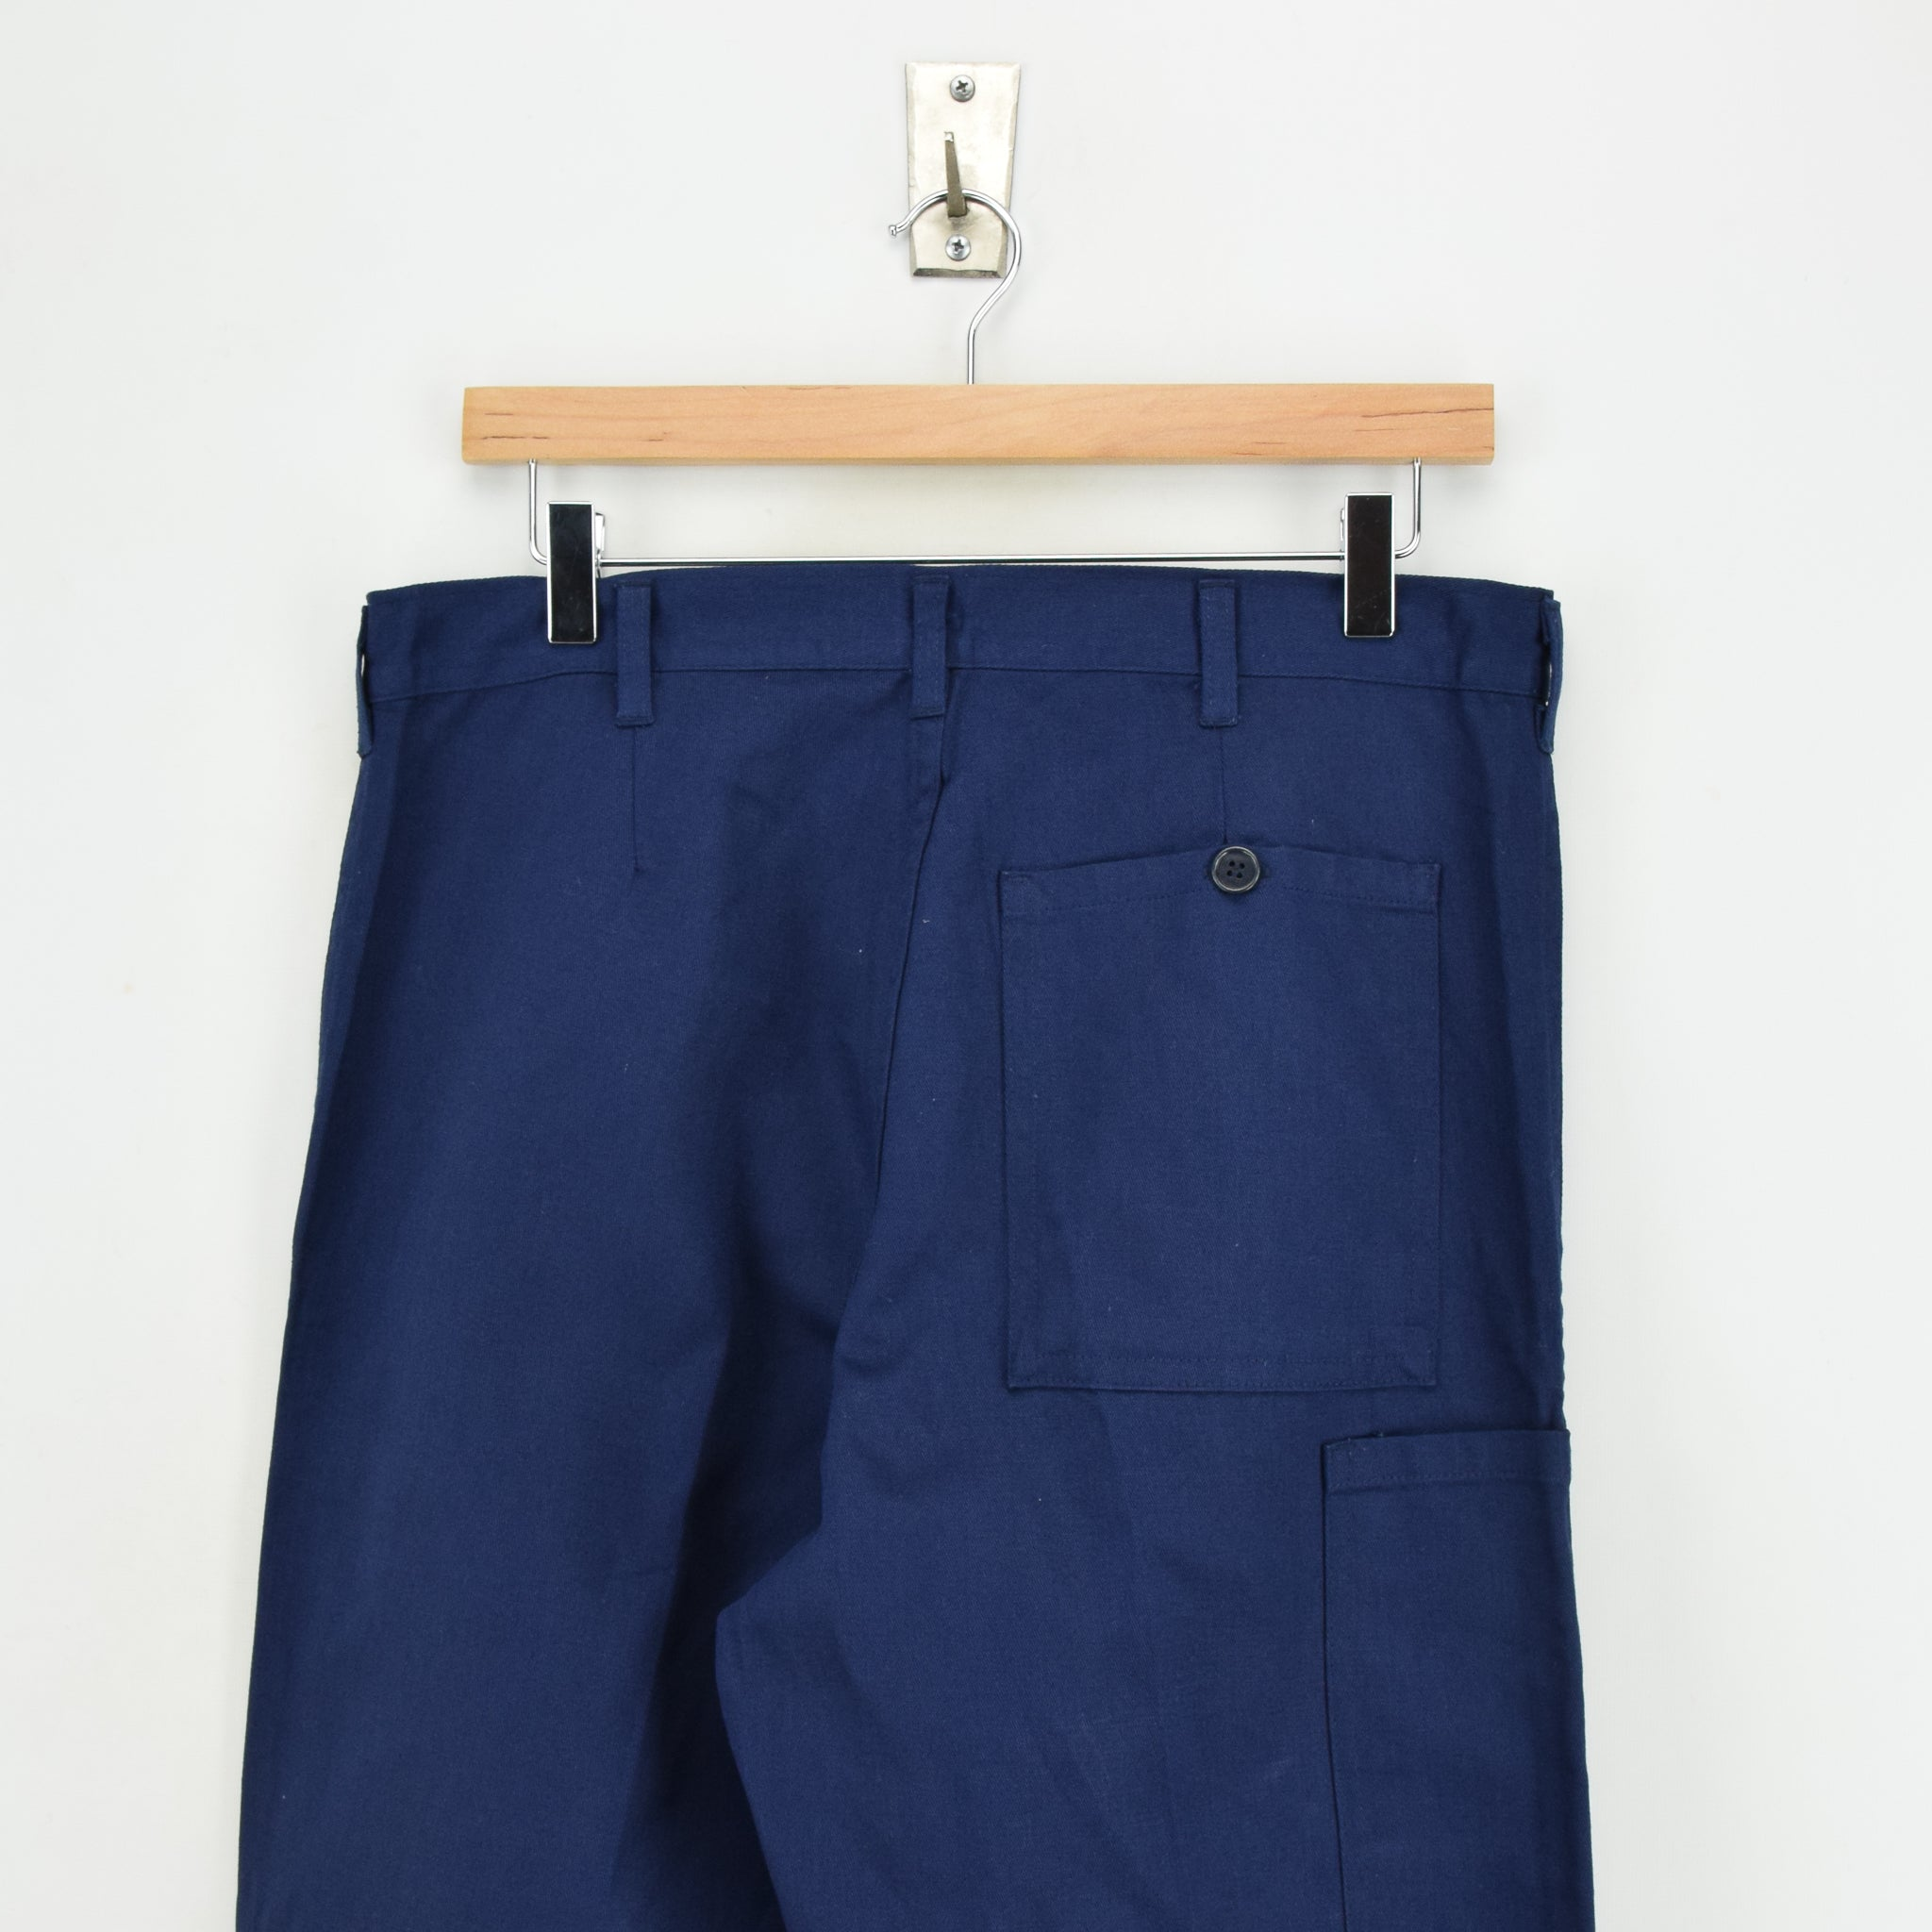 Vintage Deadstock Blue French Style Work Utility Trousers Italy Made 30 W 28 L back waist